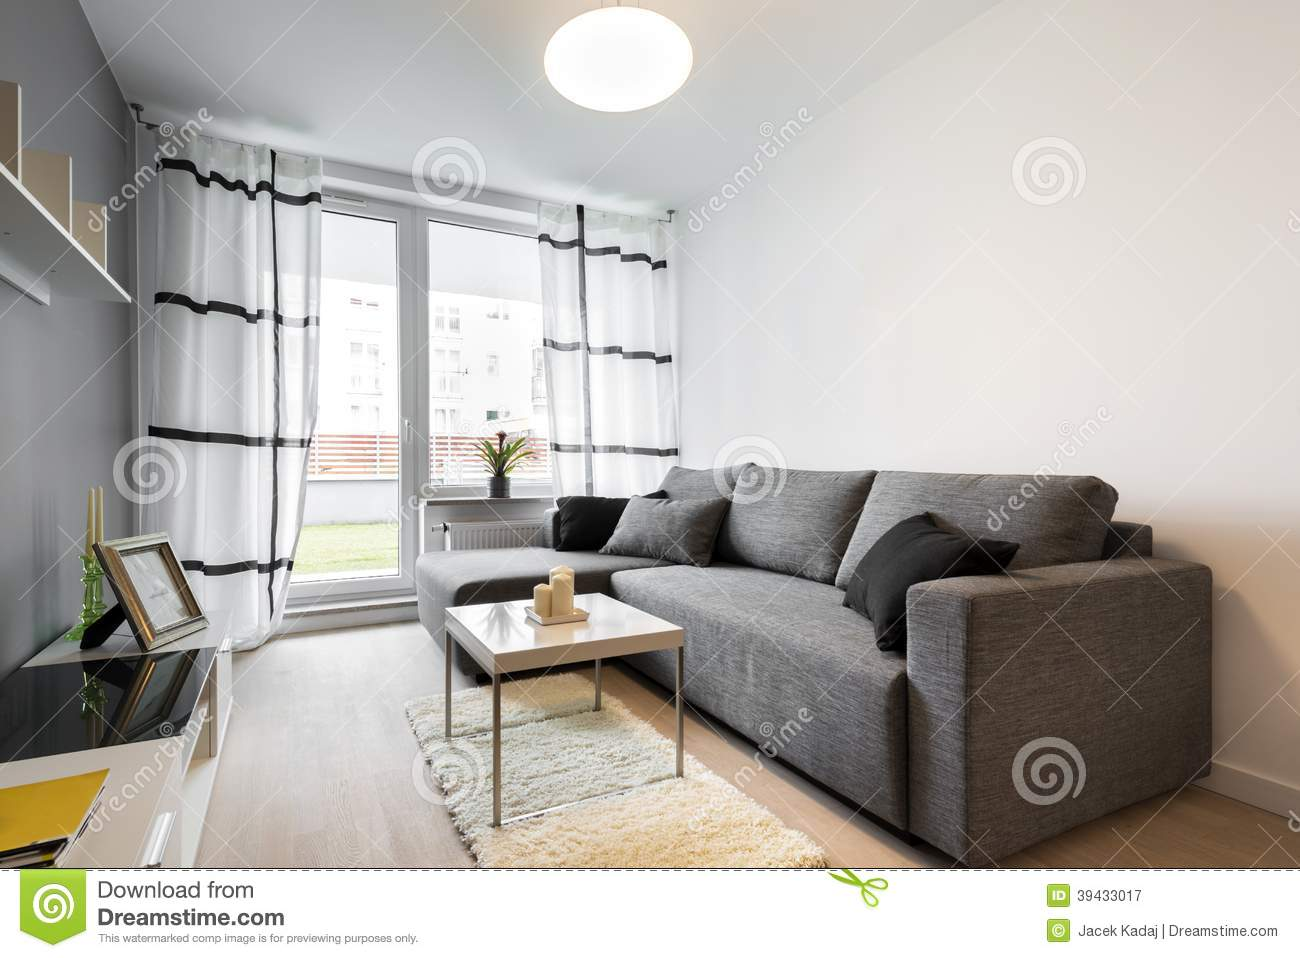 Sofa gris dans le salon moderne photo stock   image: 39433017